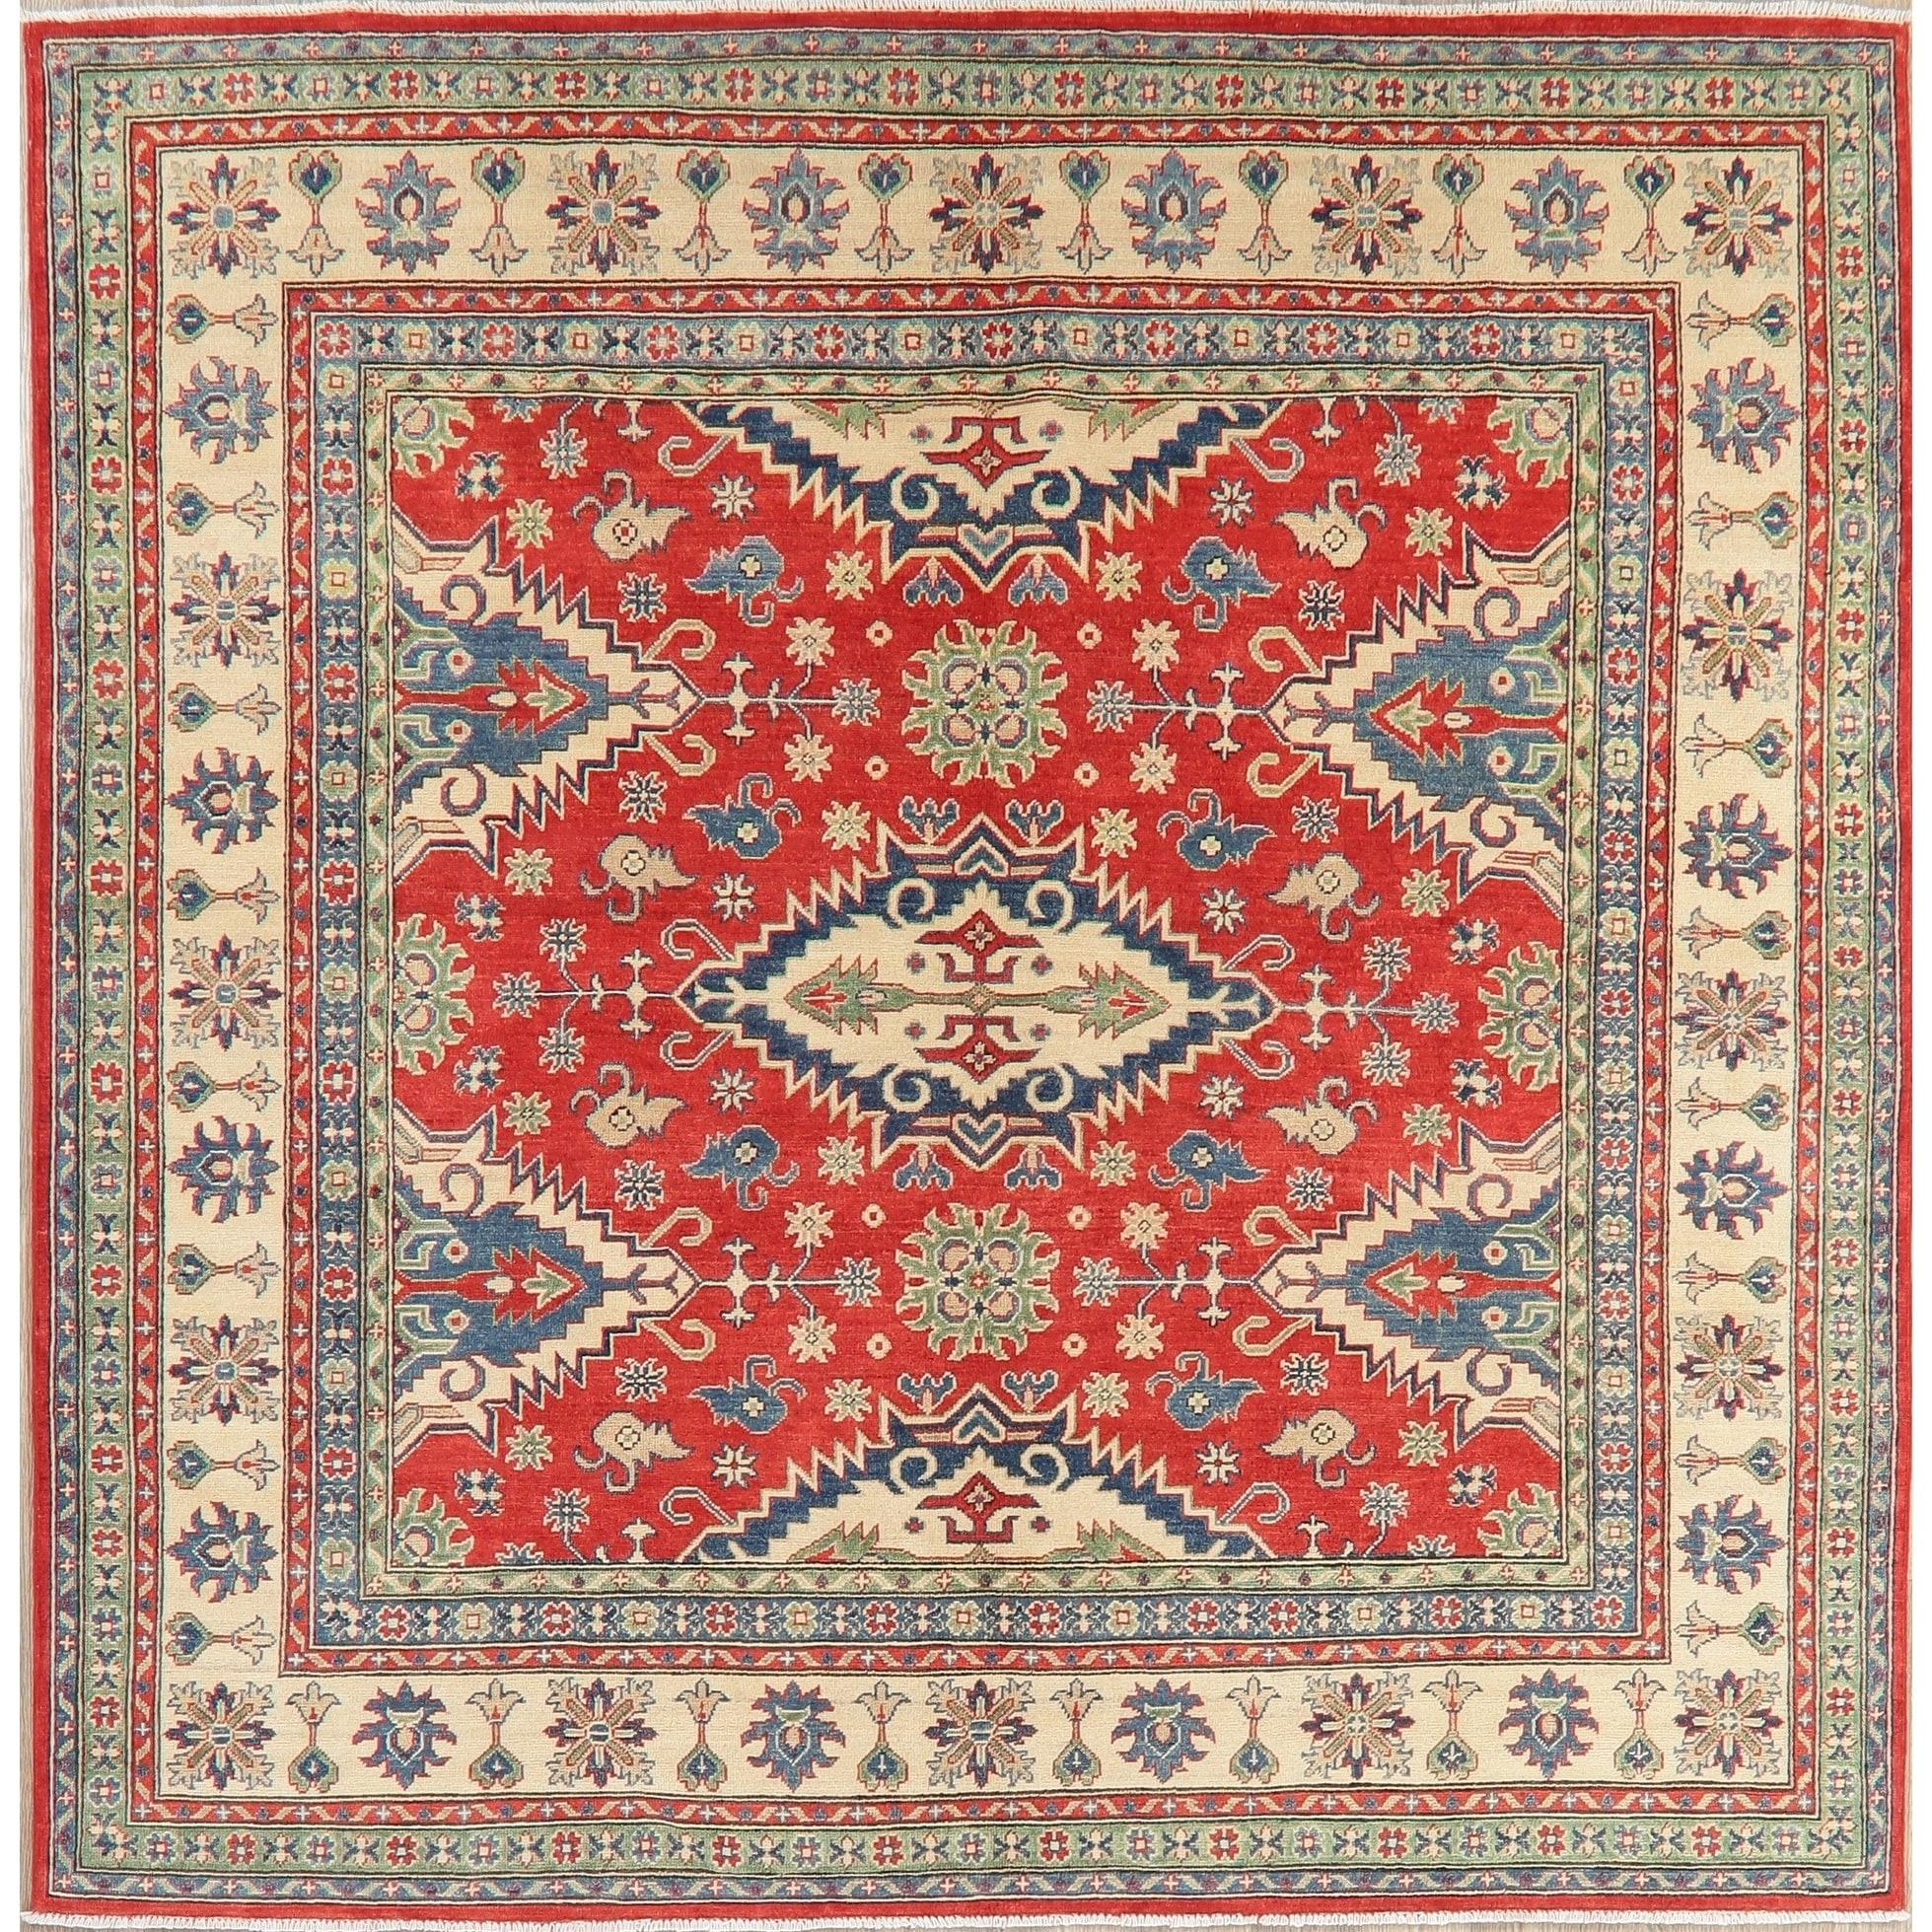 Kazak Chechen Oriental Hand Knotted Wool Pakistani Rug 8 0 X 7 11 Square 8 0 X 7 11 Square Red Square Area Rugs Area Rugs Red Area Rug